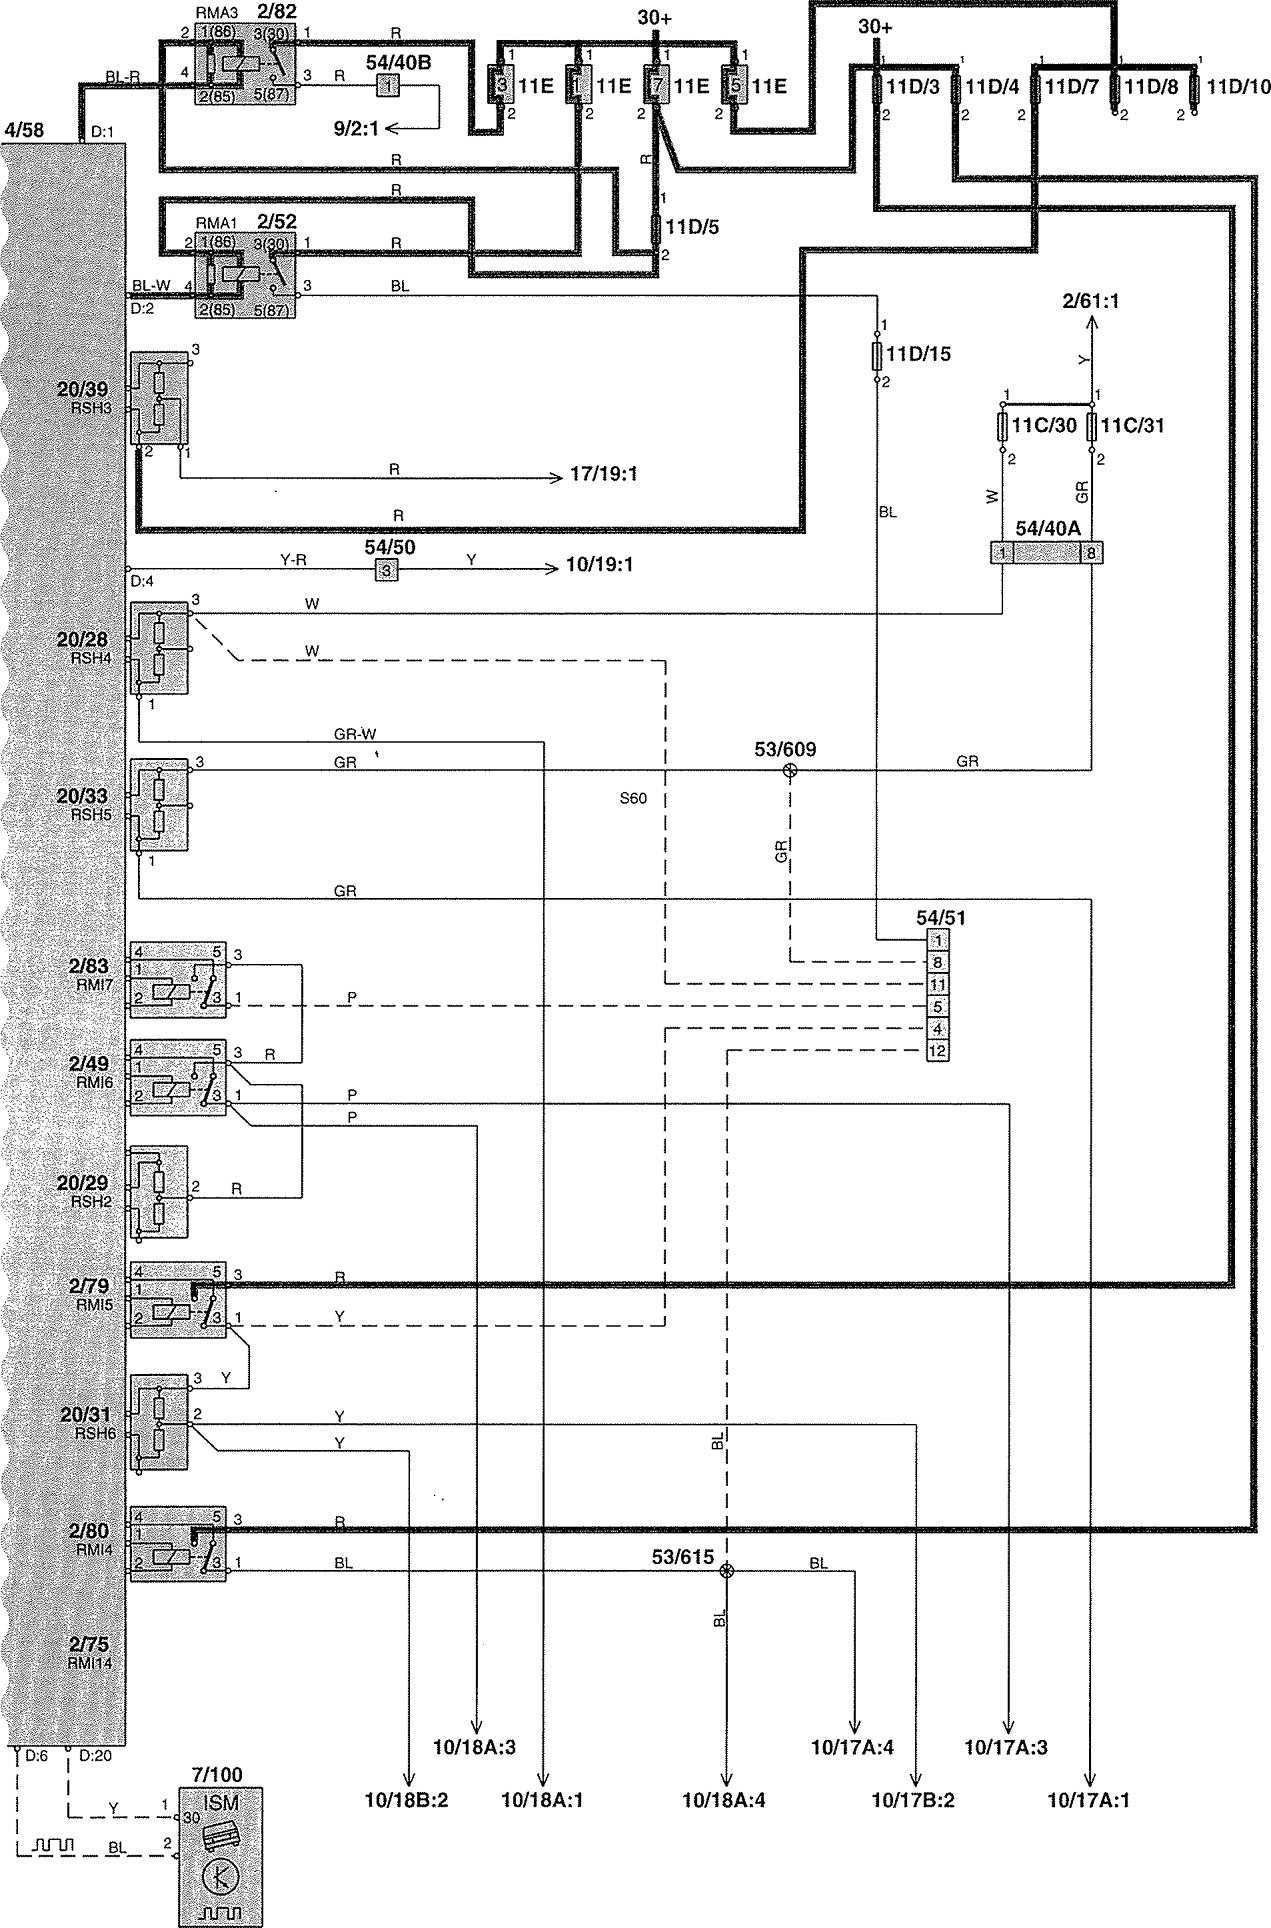 Volvo 2001 Radio Wiring - Wiring Diagram Options gear-authority-a -  gear-authority-a.vimercateseoreno.it | Volvo V70 Radio Wiring Diagram |  | vimercateseoreno.it